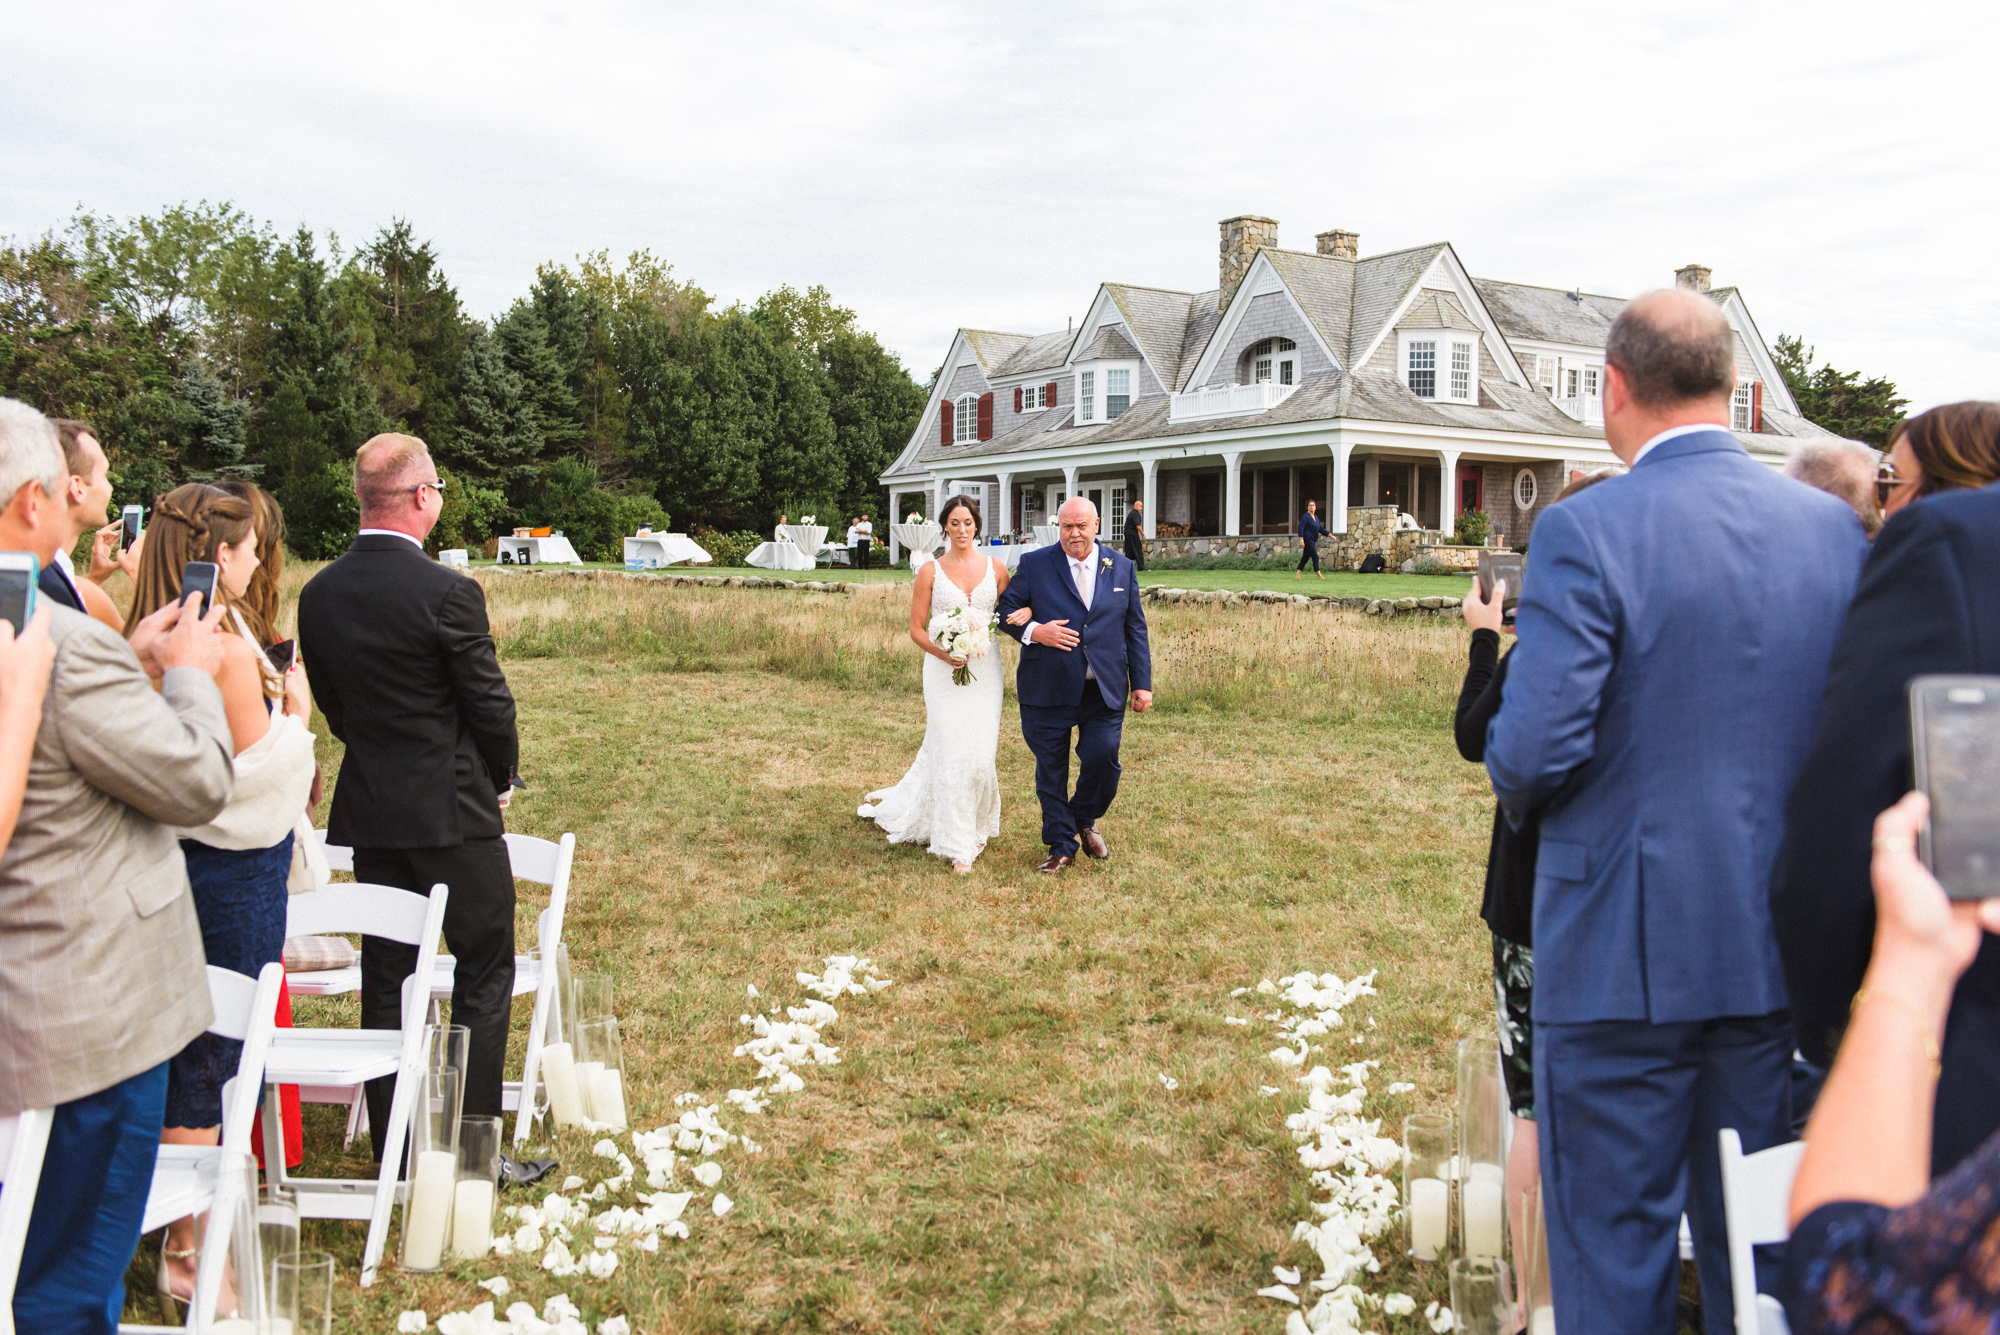 A private wedding celebration on Martha's Vineyard photo by David Welch Photography